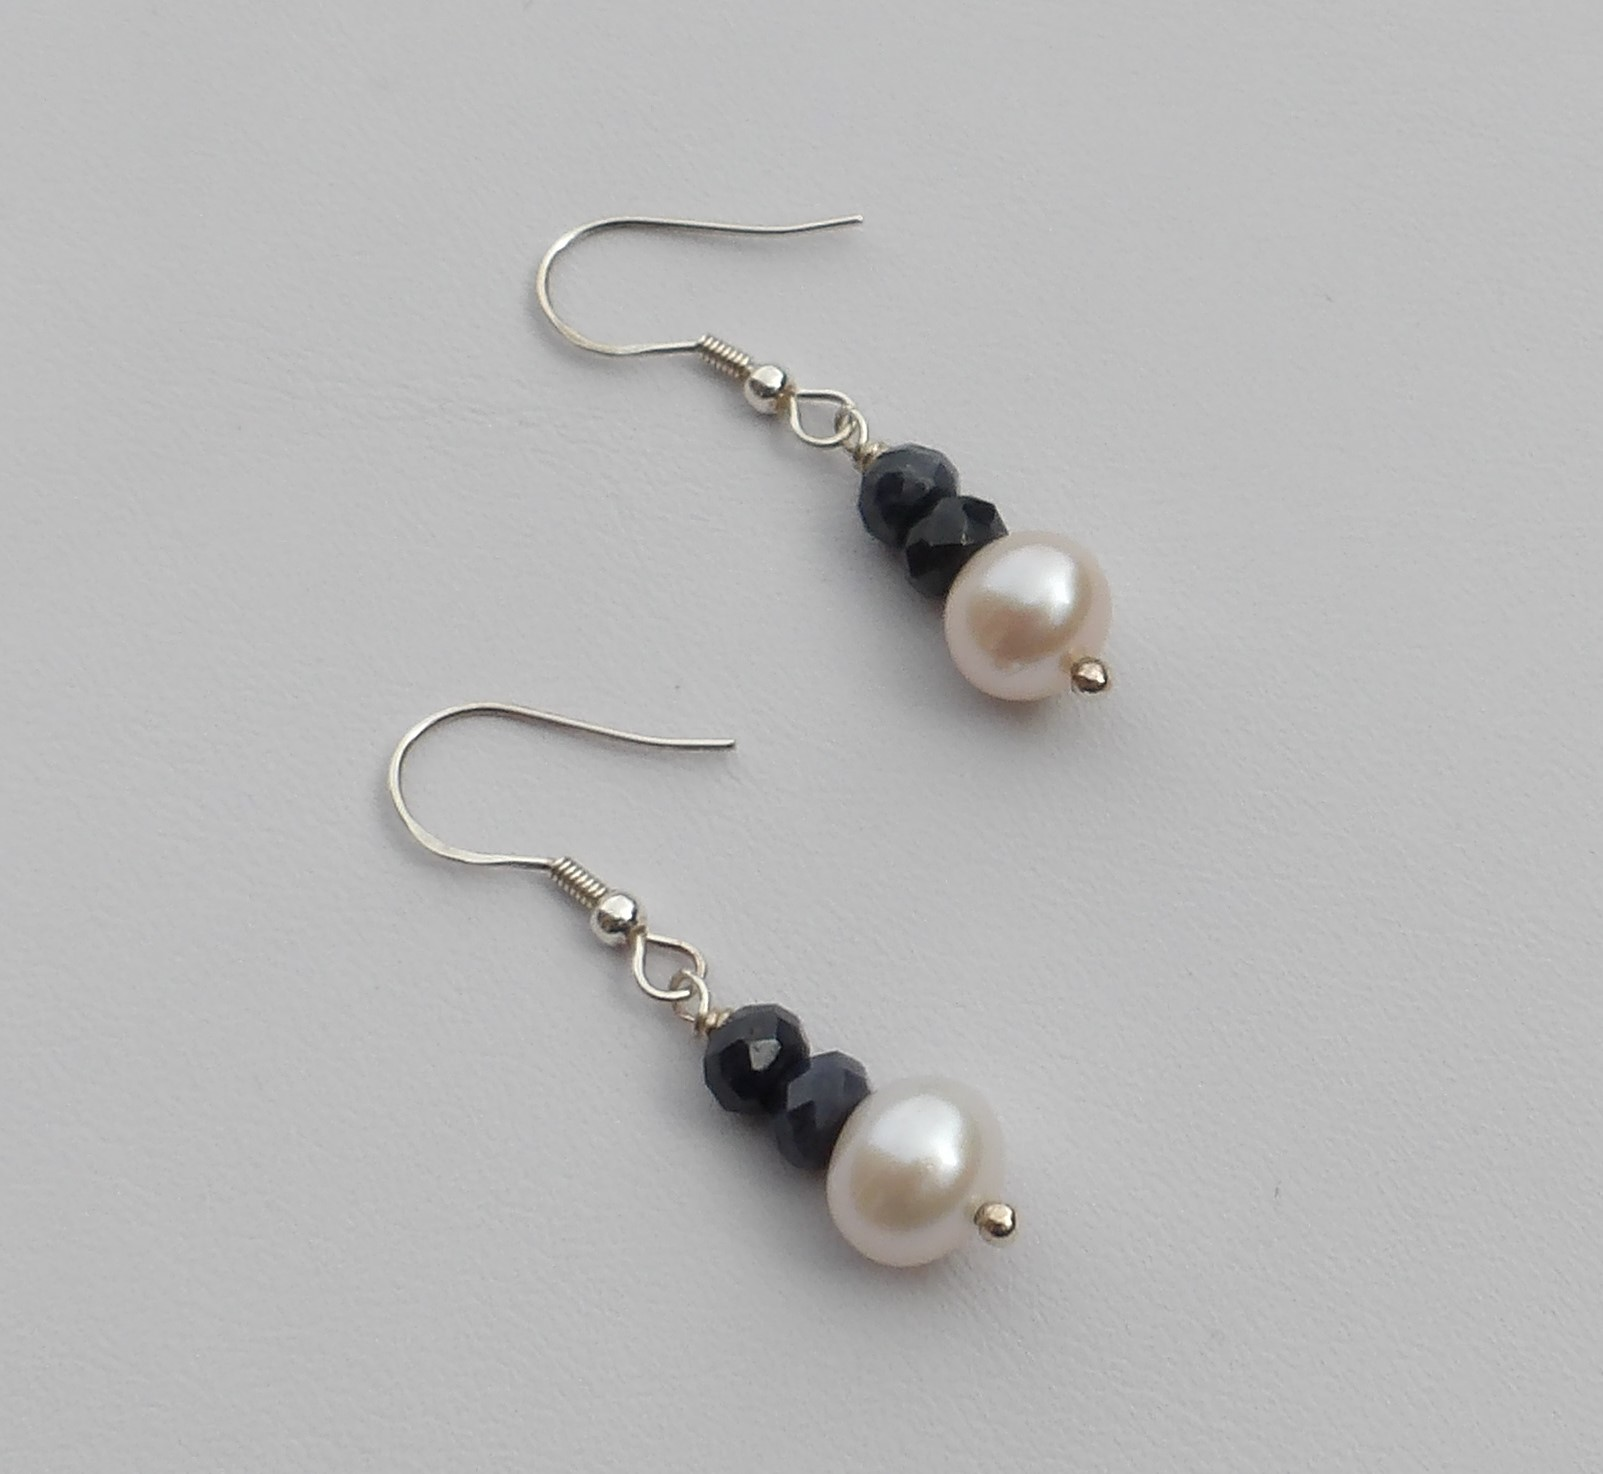 made and kodak earrings by camera product still digital pearl sapphire single marianne